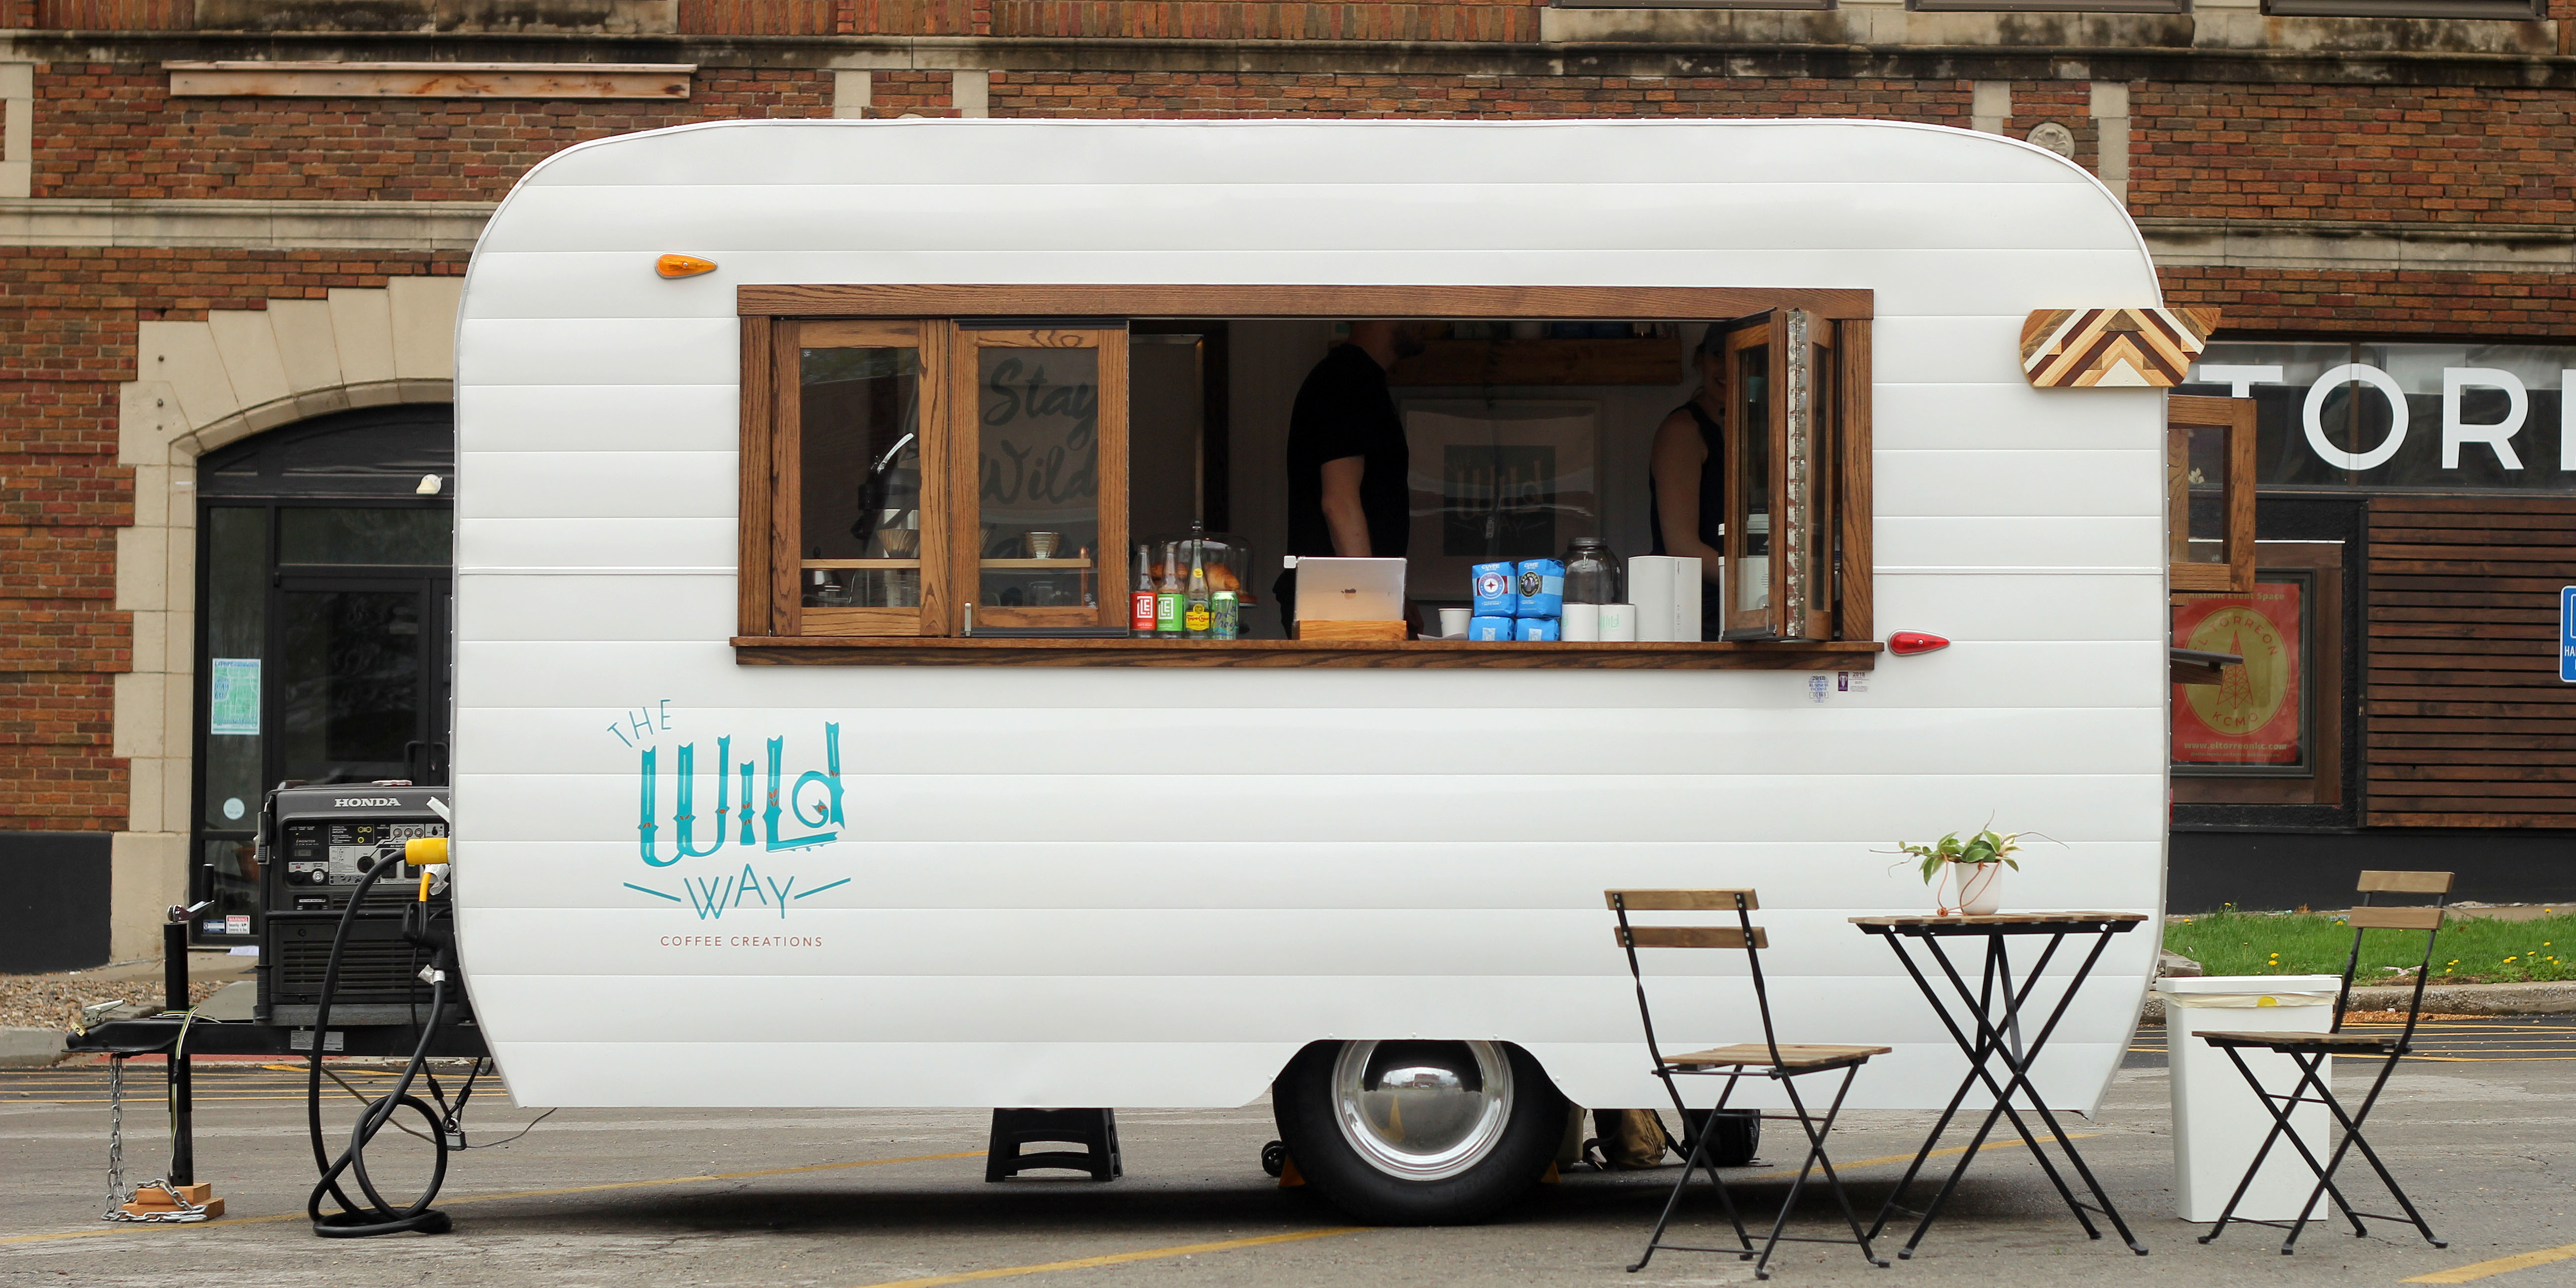 The Wild Way Coffee Camper located on E. 31st Gillham Plaza by El Torreon